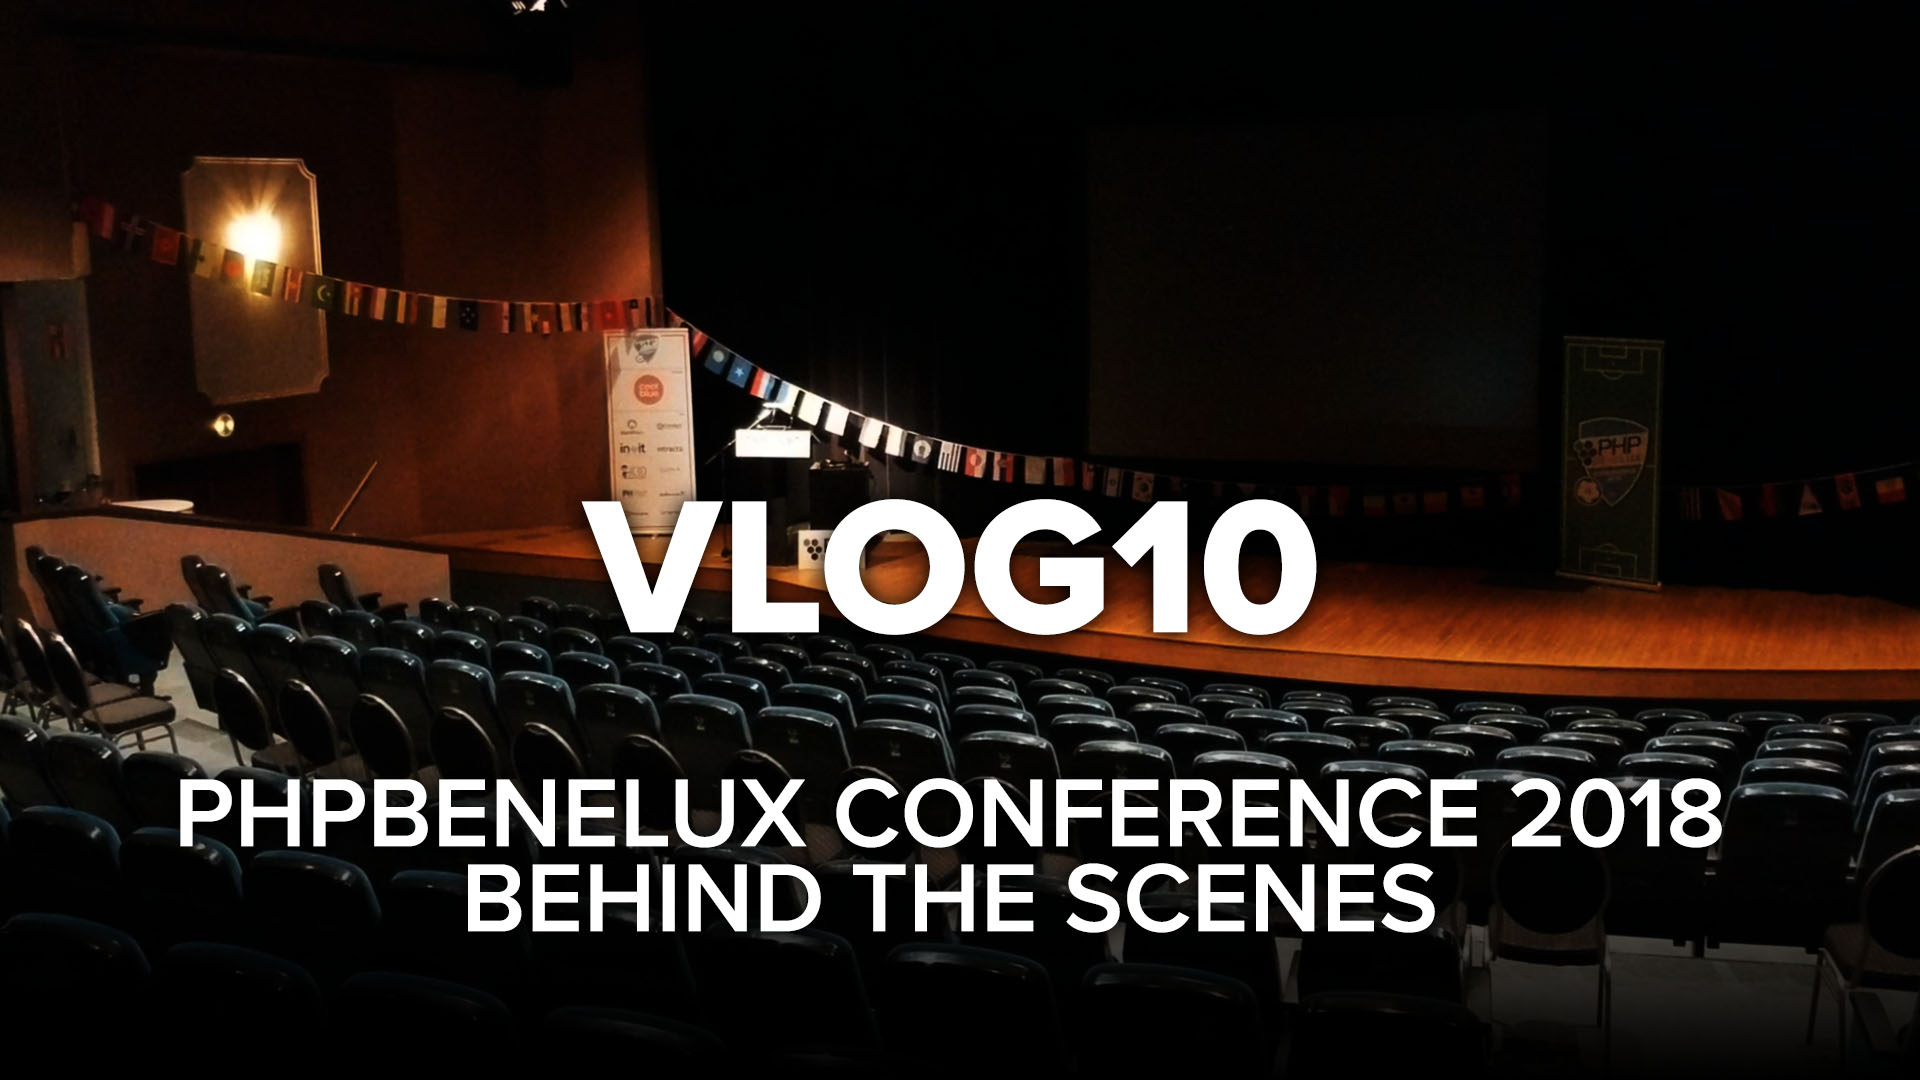 PHPBenelux Conference 2018 behind the scenes - VLOG 10